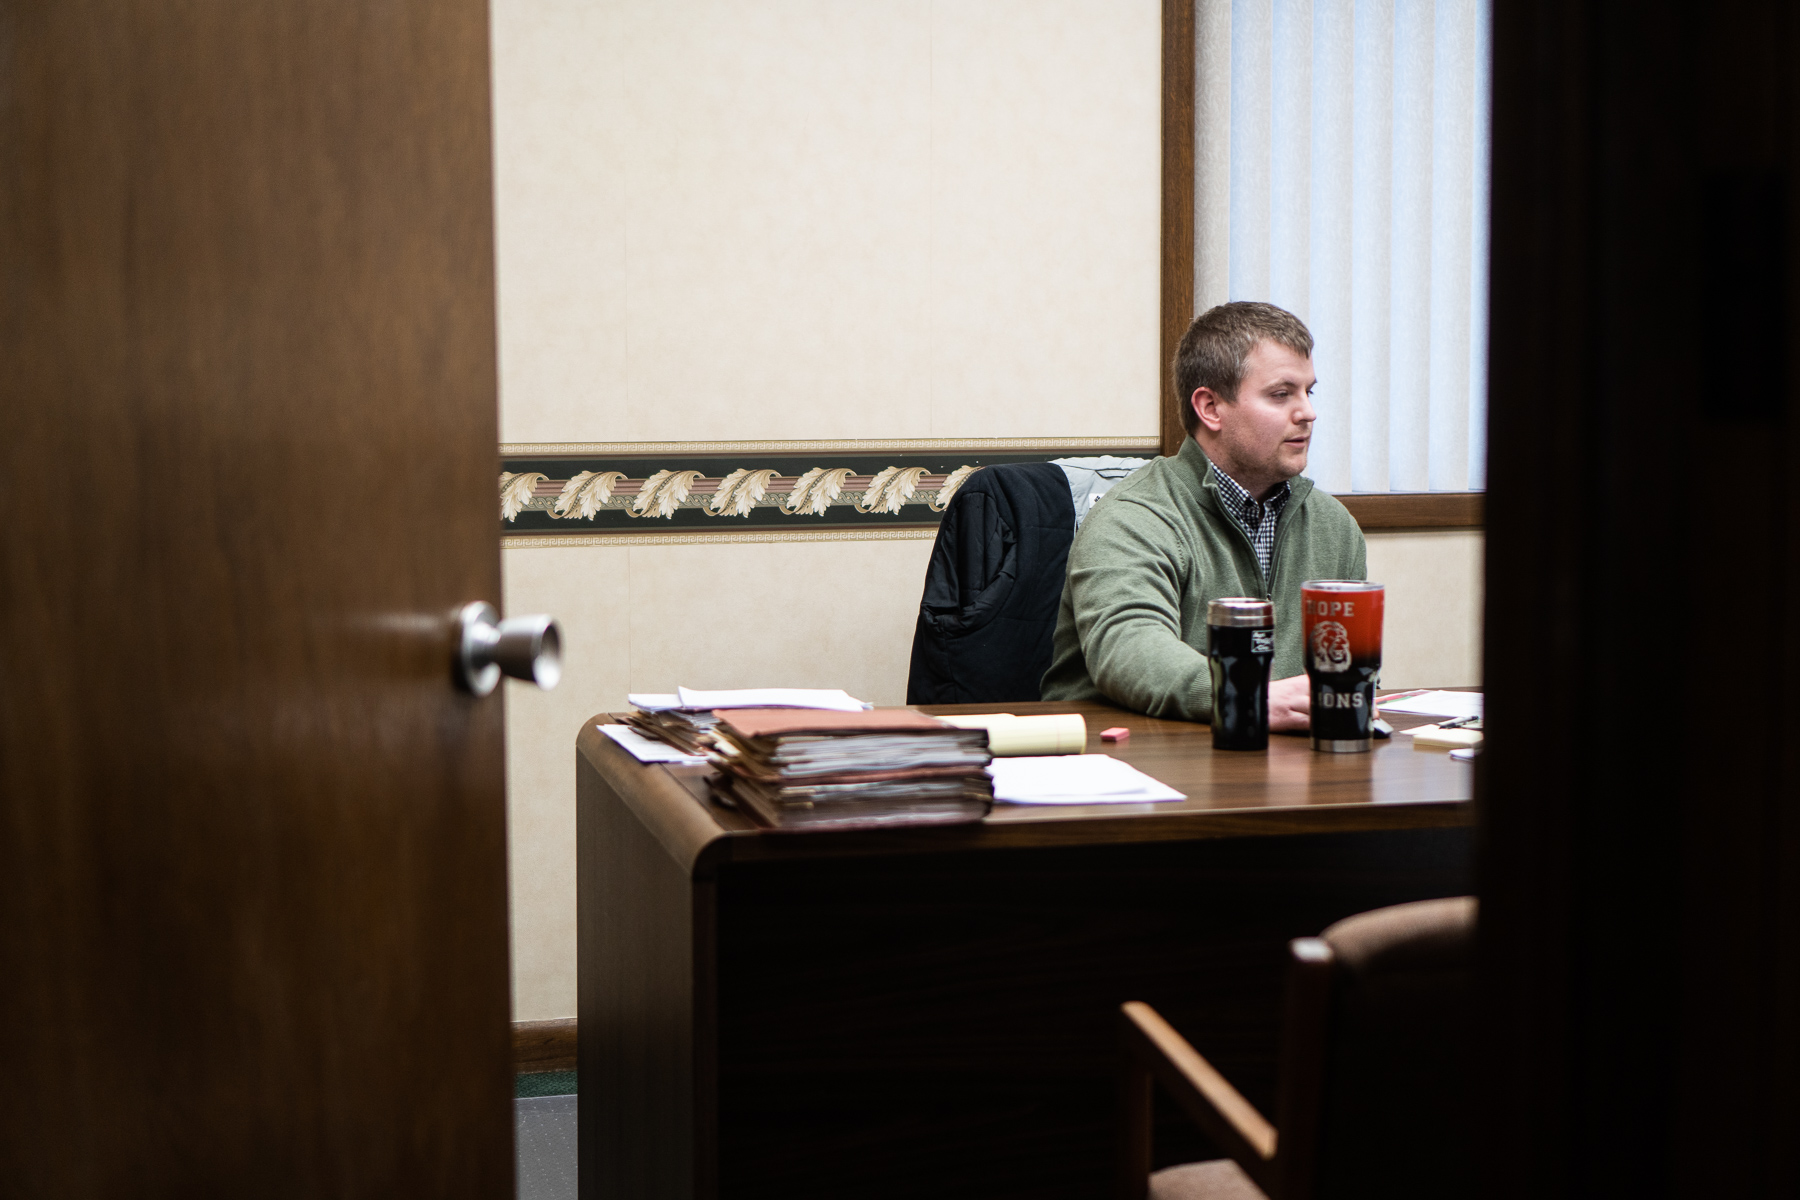 Dillon Cook, one of Lucas Hicks' friends and pallbearer at the funeral, sits in his office at the First National Bank of Hope, Kansas.